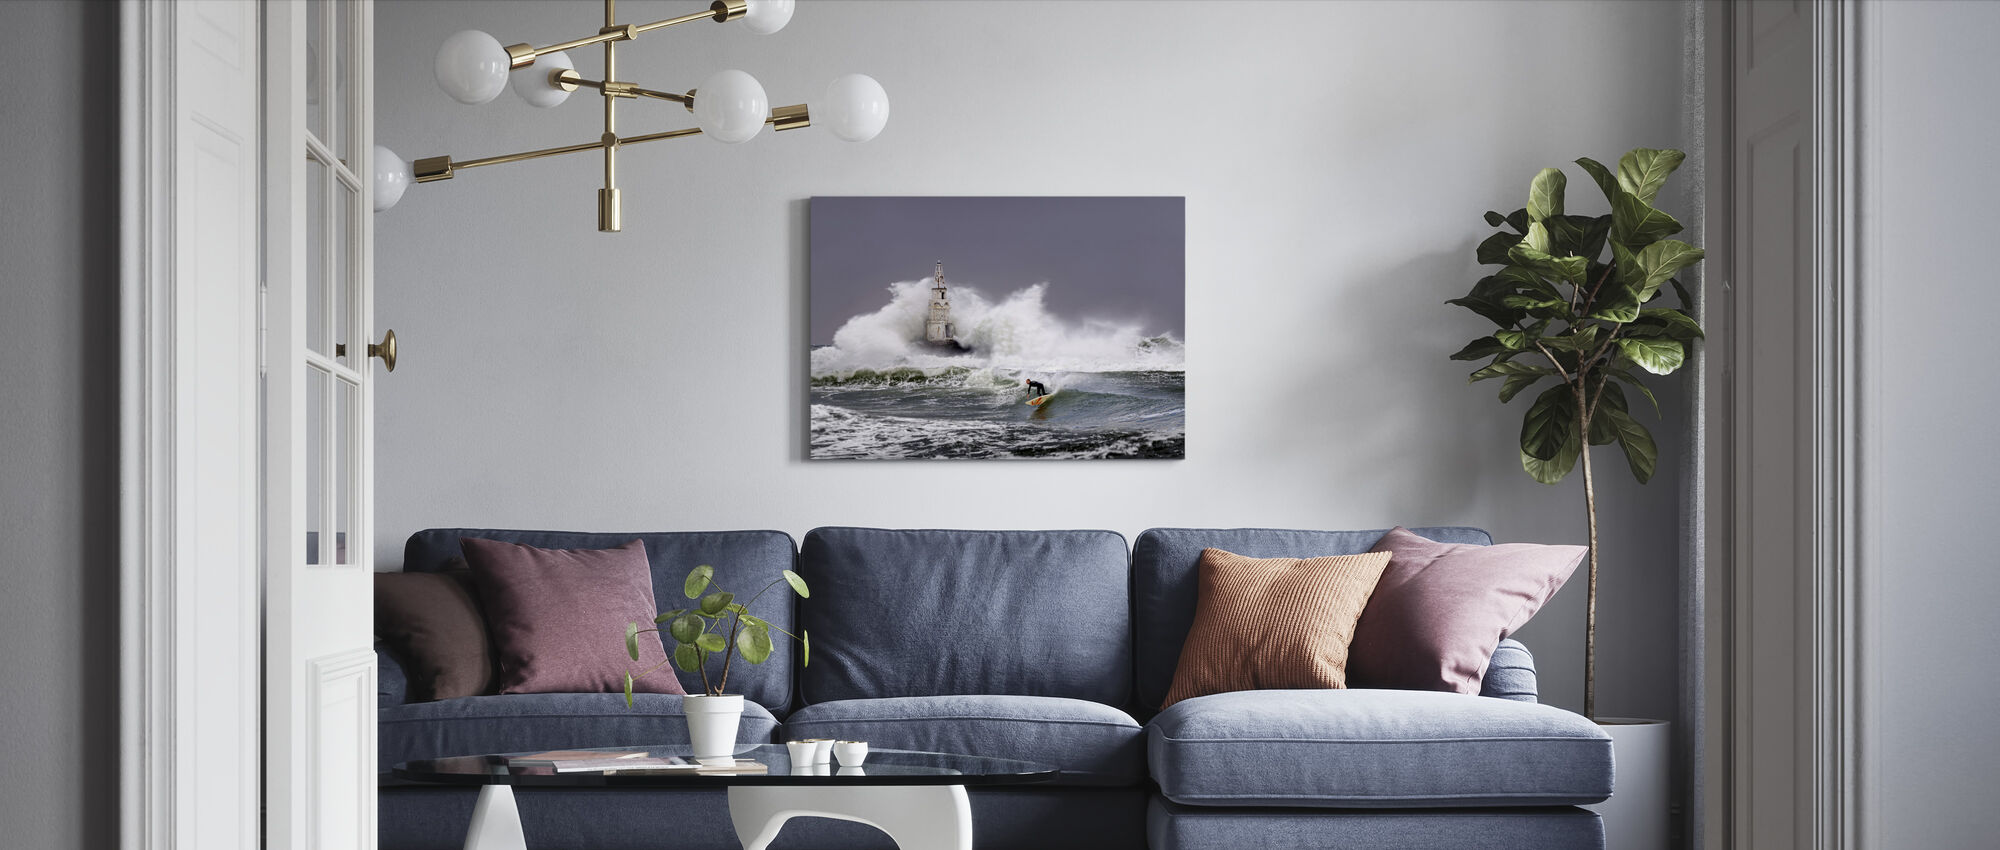 Lighthouse Surfer - Canvas print - Living Room